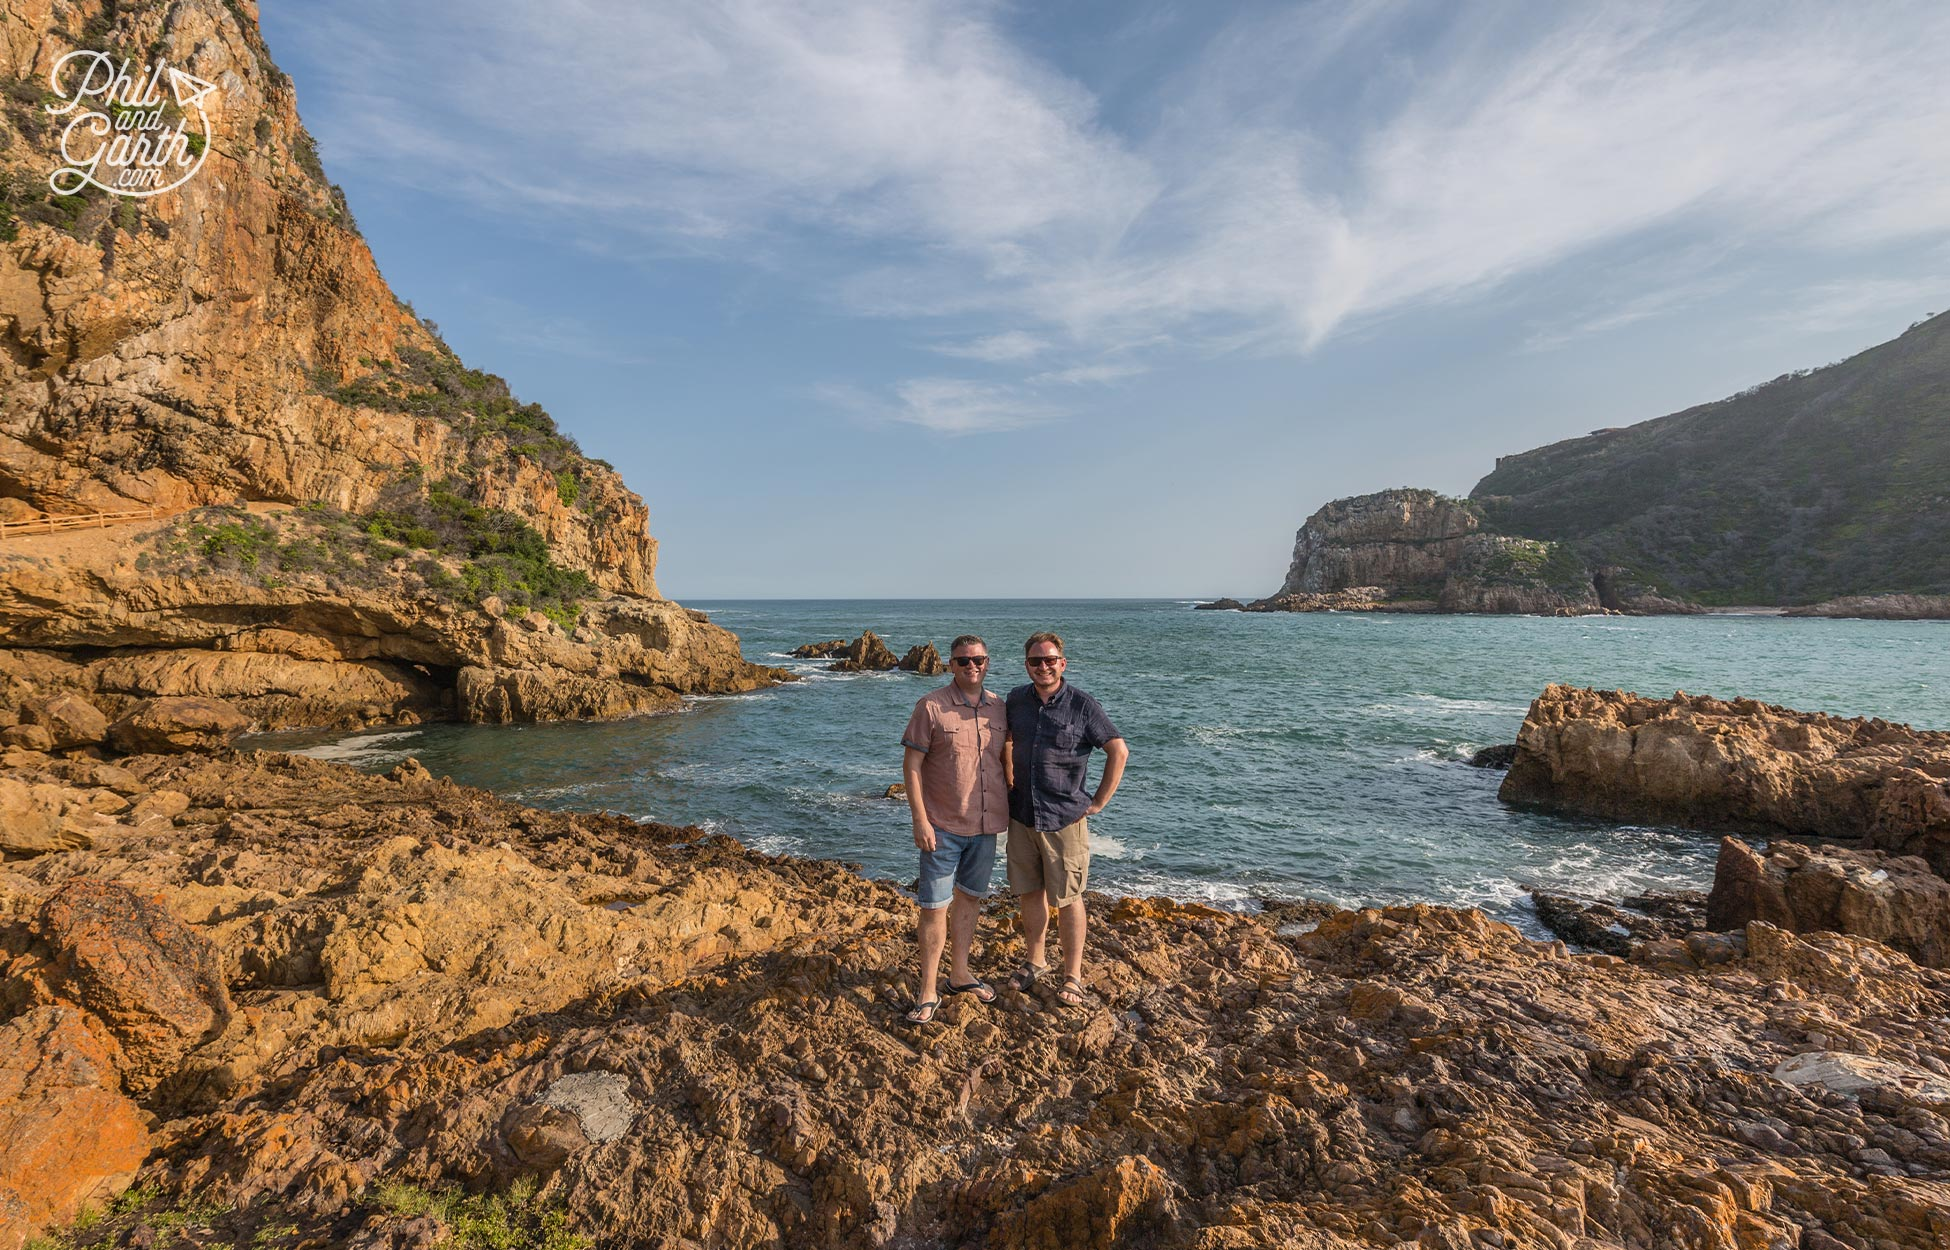 Phil and Garth at Knysna Heads